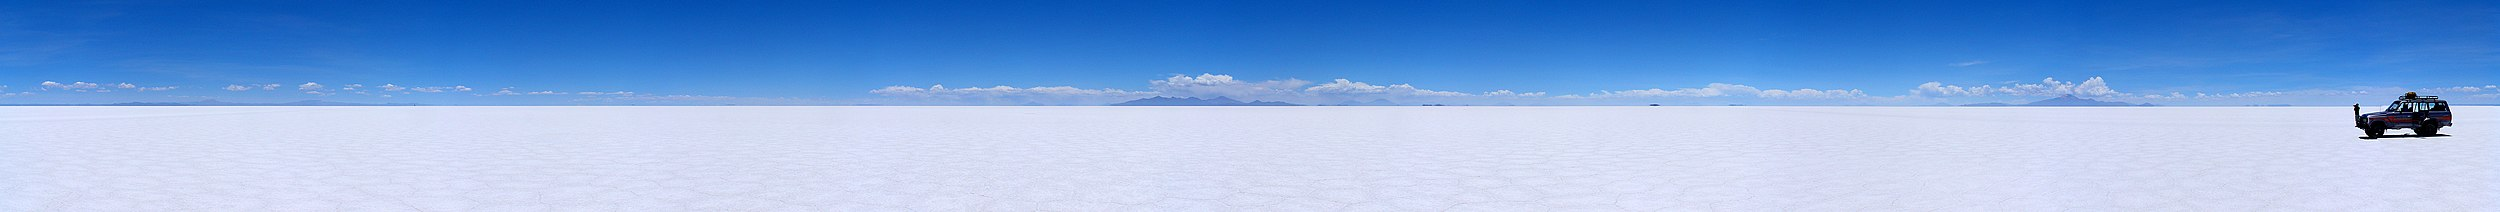 Panorama over Salar de Uyuni